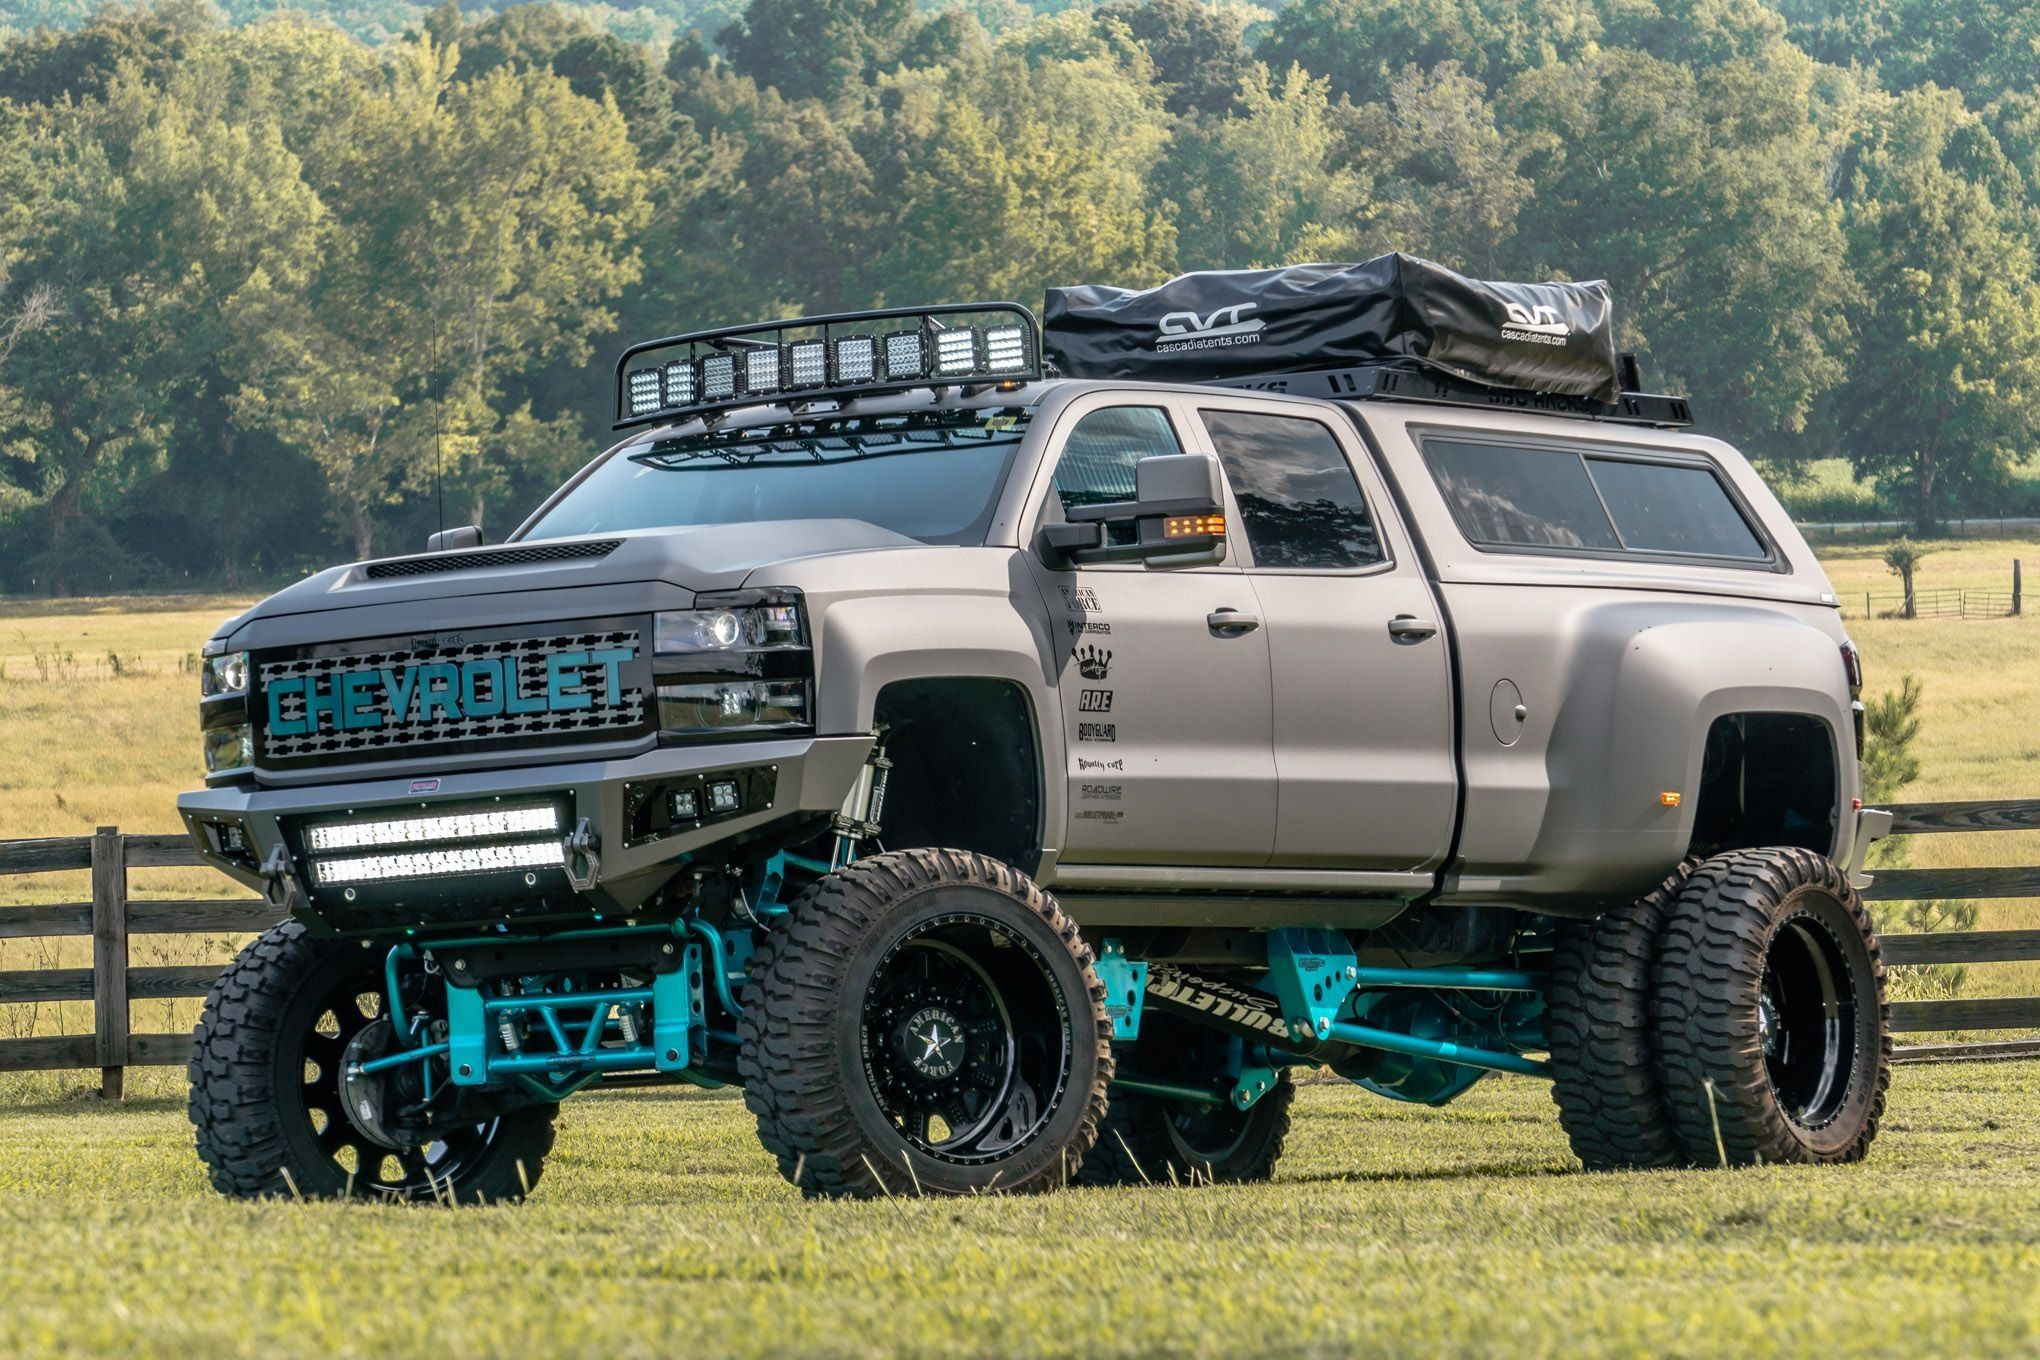 Epic Off Road Tuning And Serious Body Lift For Chevy Silverado